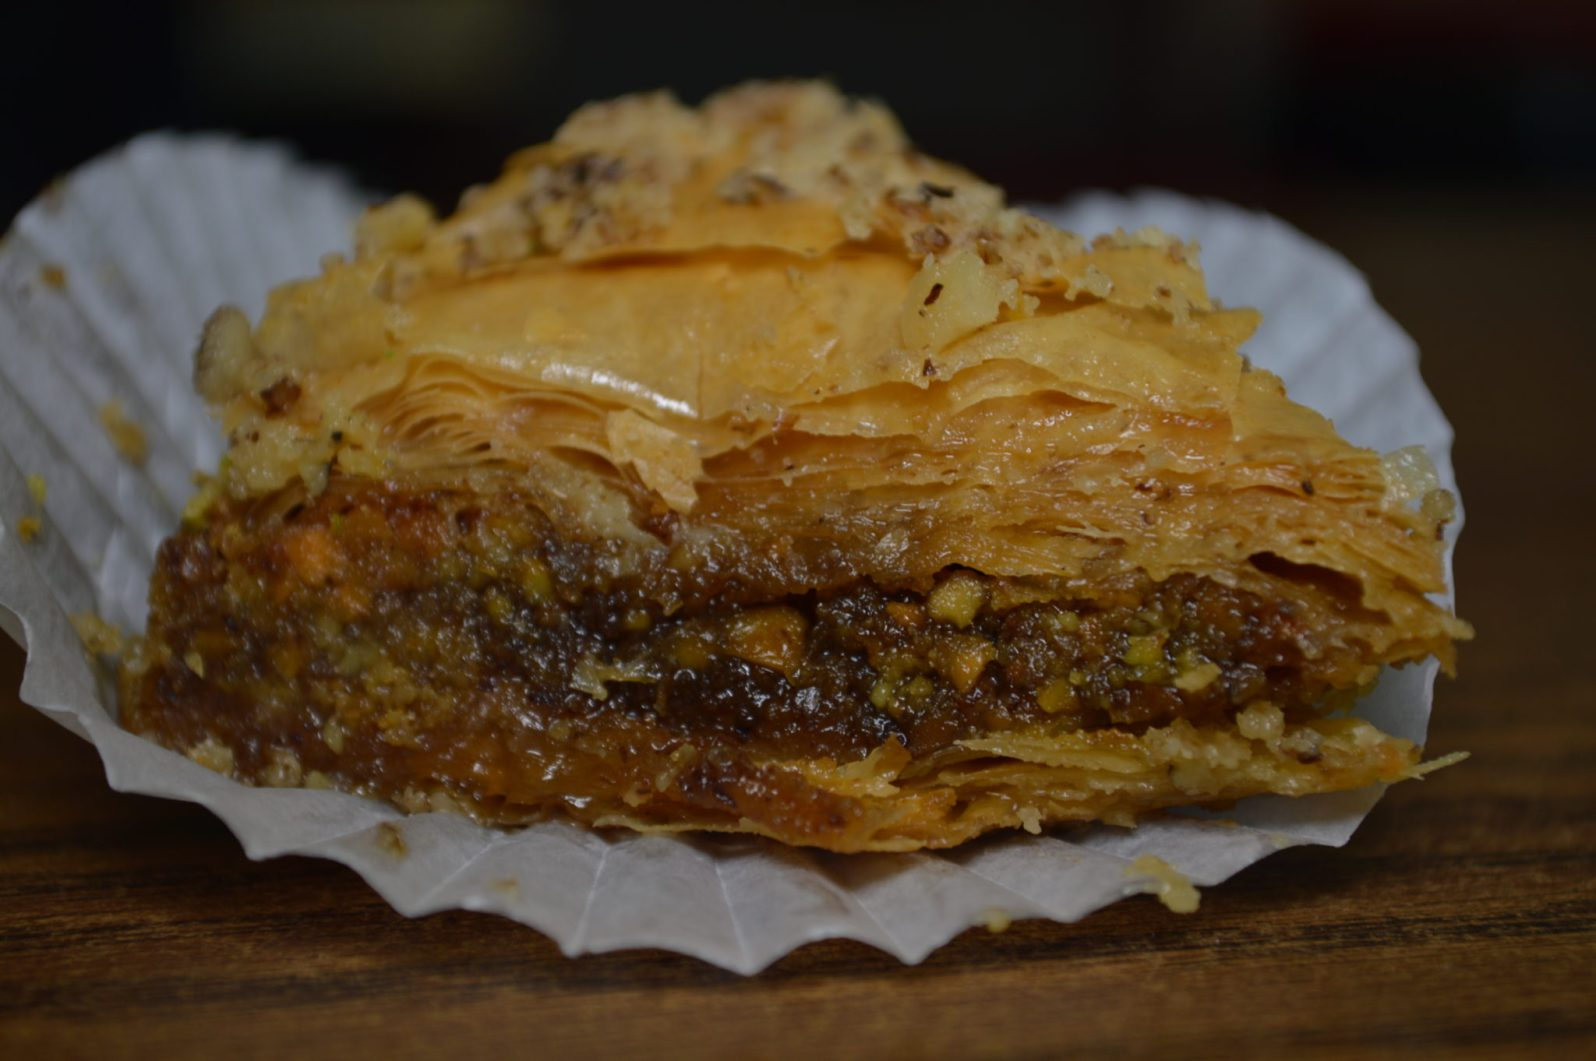 Ali Aziz makes 7 kinds of baklava in his coral gable shop. We're crazy about his flaky pastry.